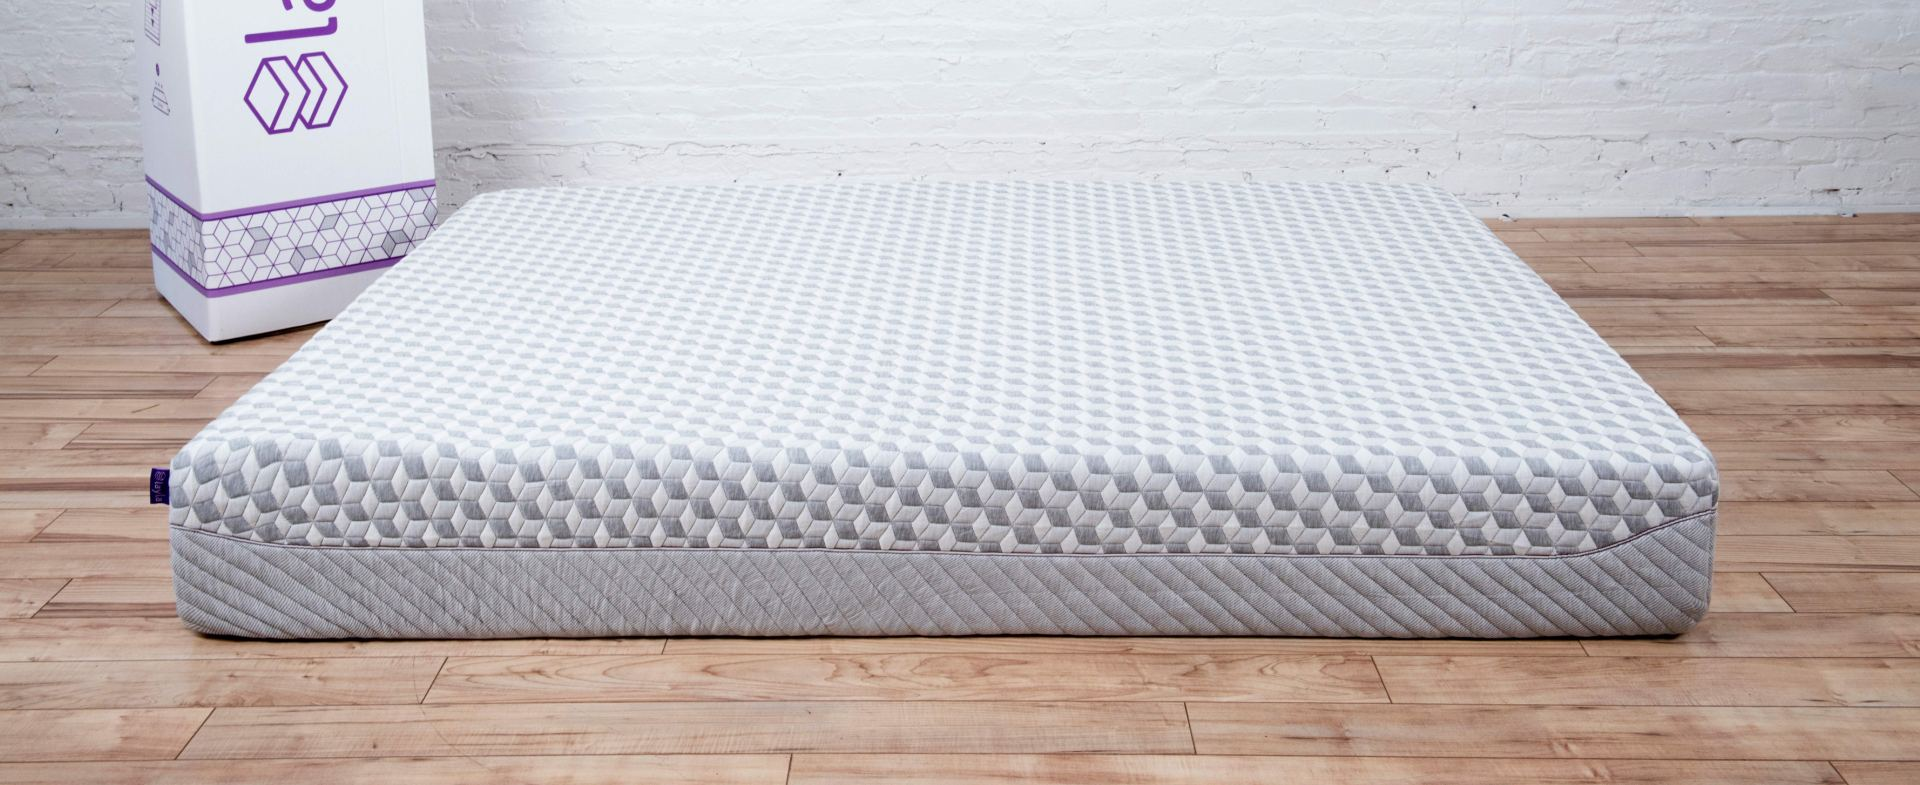 Layla Copper Infused Mattress